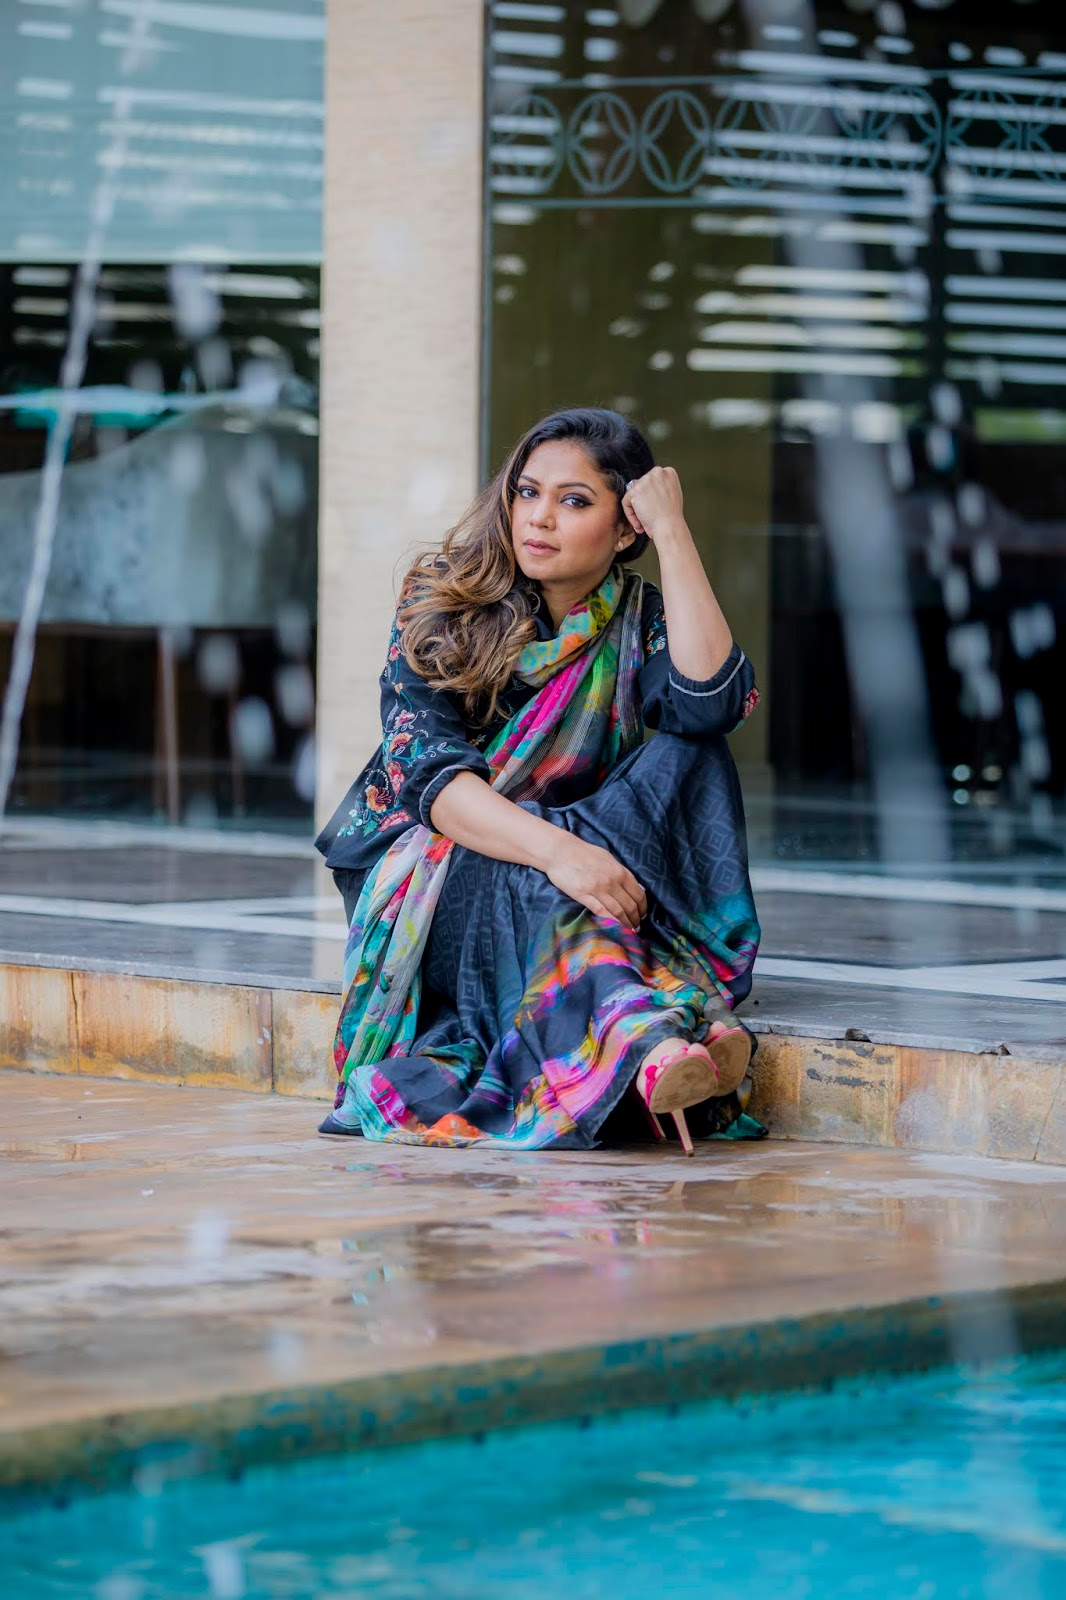 where to stay in jaipur and what to eat, Hilton Jaipur, travel blogger, style, sari style, satya paul style, coat over sari, coat with sari outfit, fusion look, long maxi eyelet dress , myriad musings